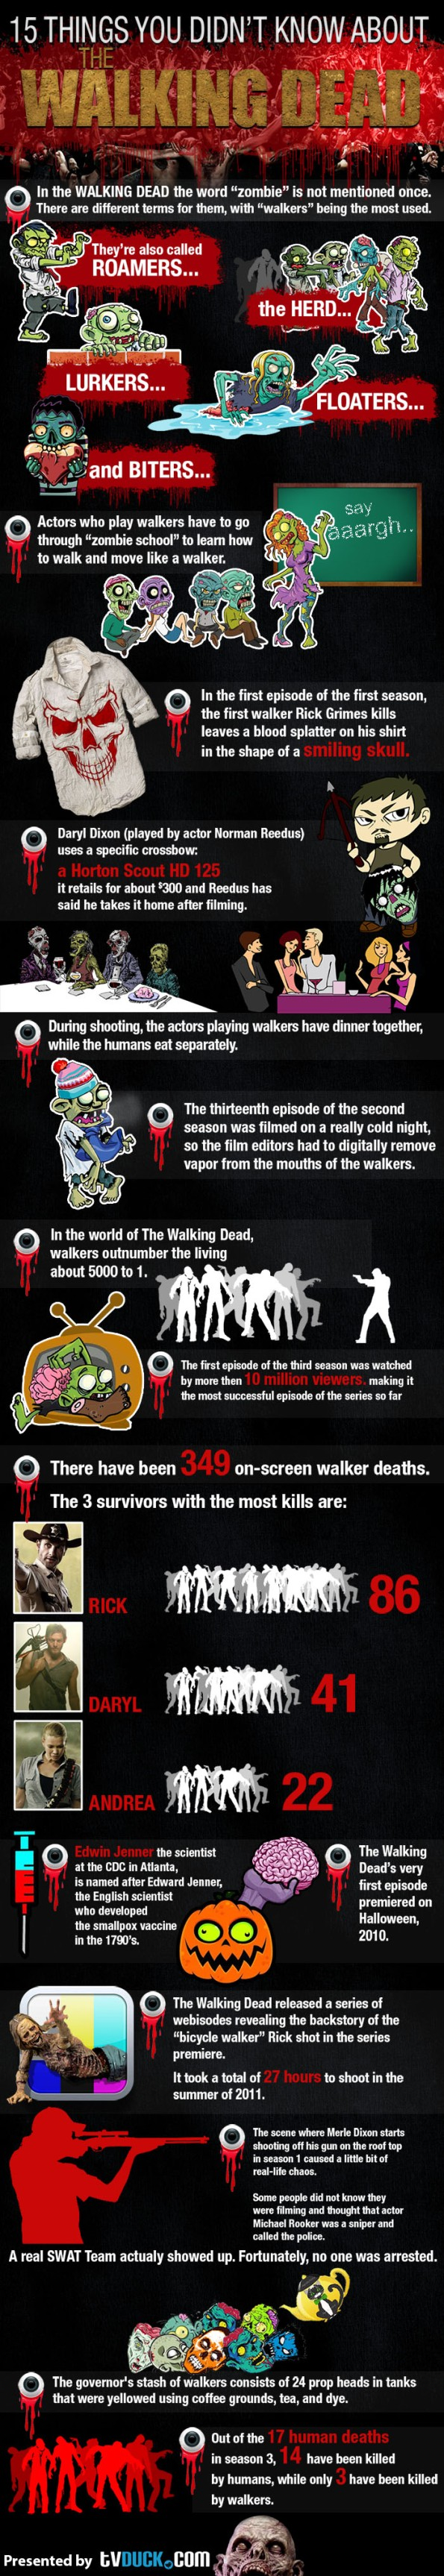 WalkingDeadInfographic